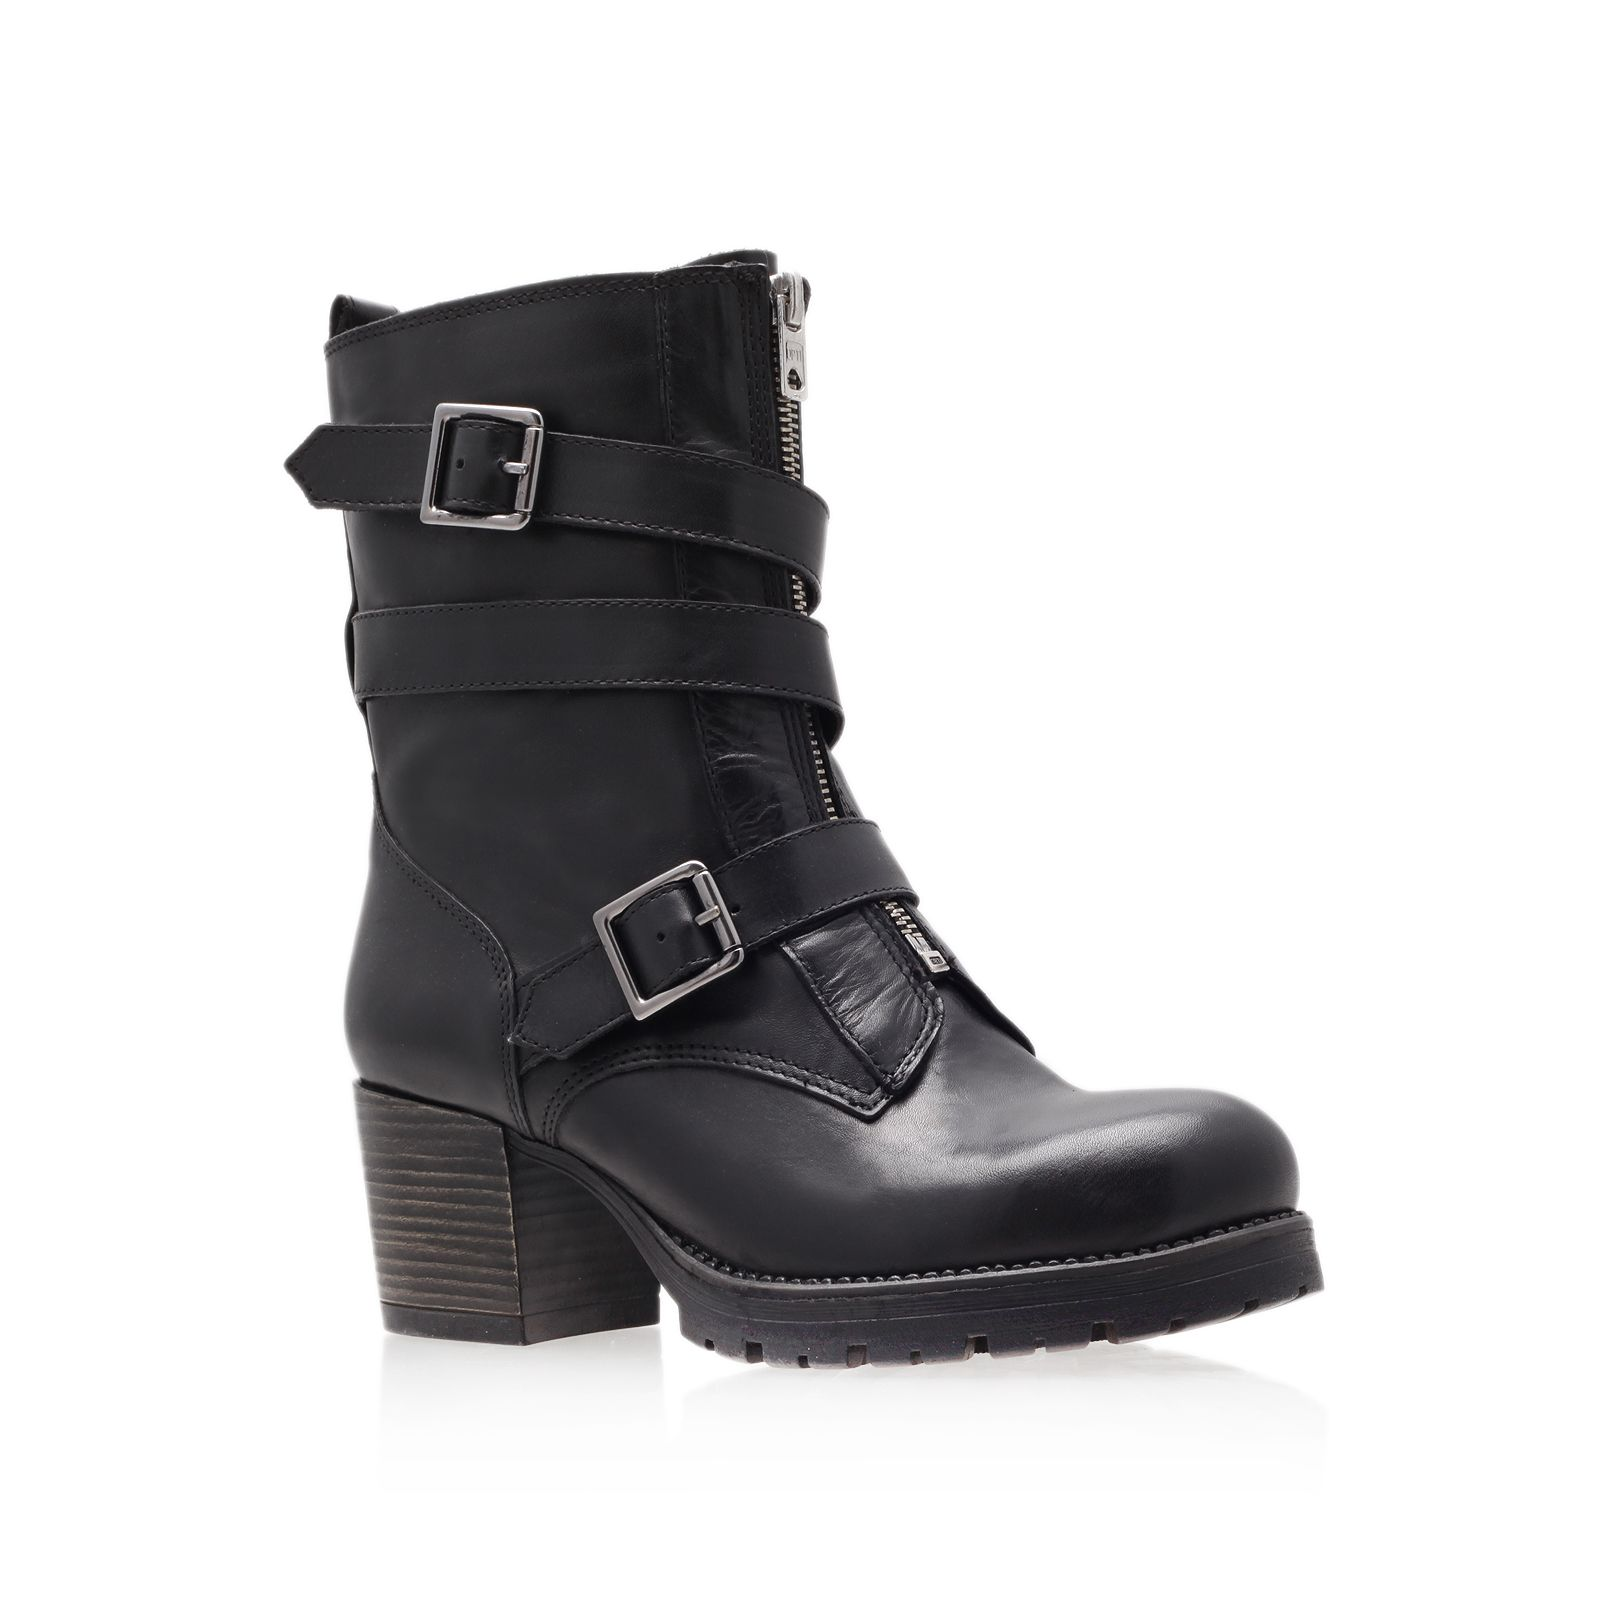 Slam ankle boots